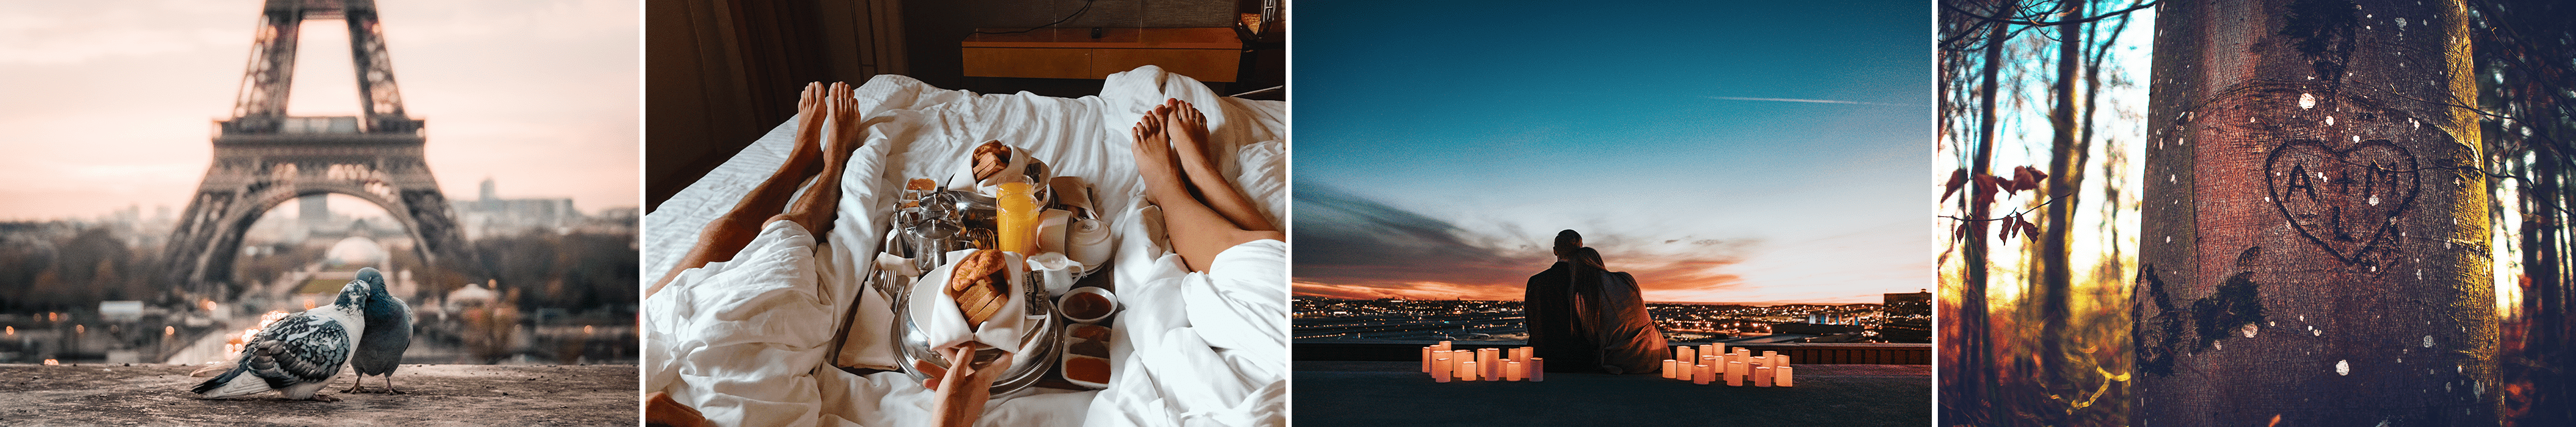 a collage of romantic images including the Eiffel Tower, breakfast in bed, a sunset, and a heart carved in a tree